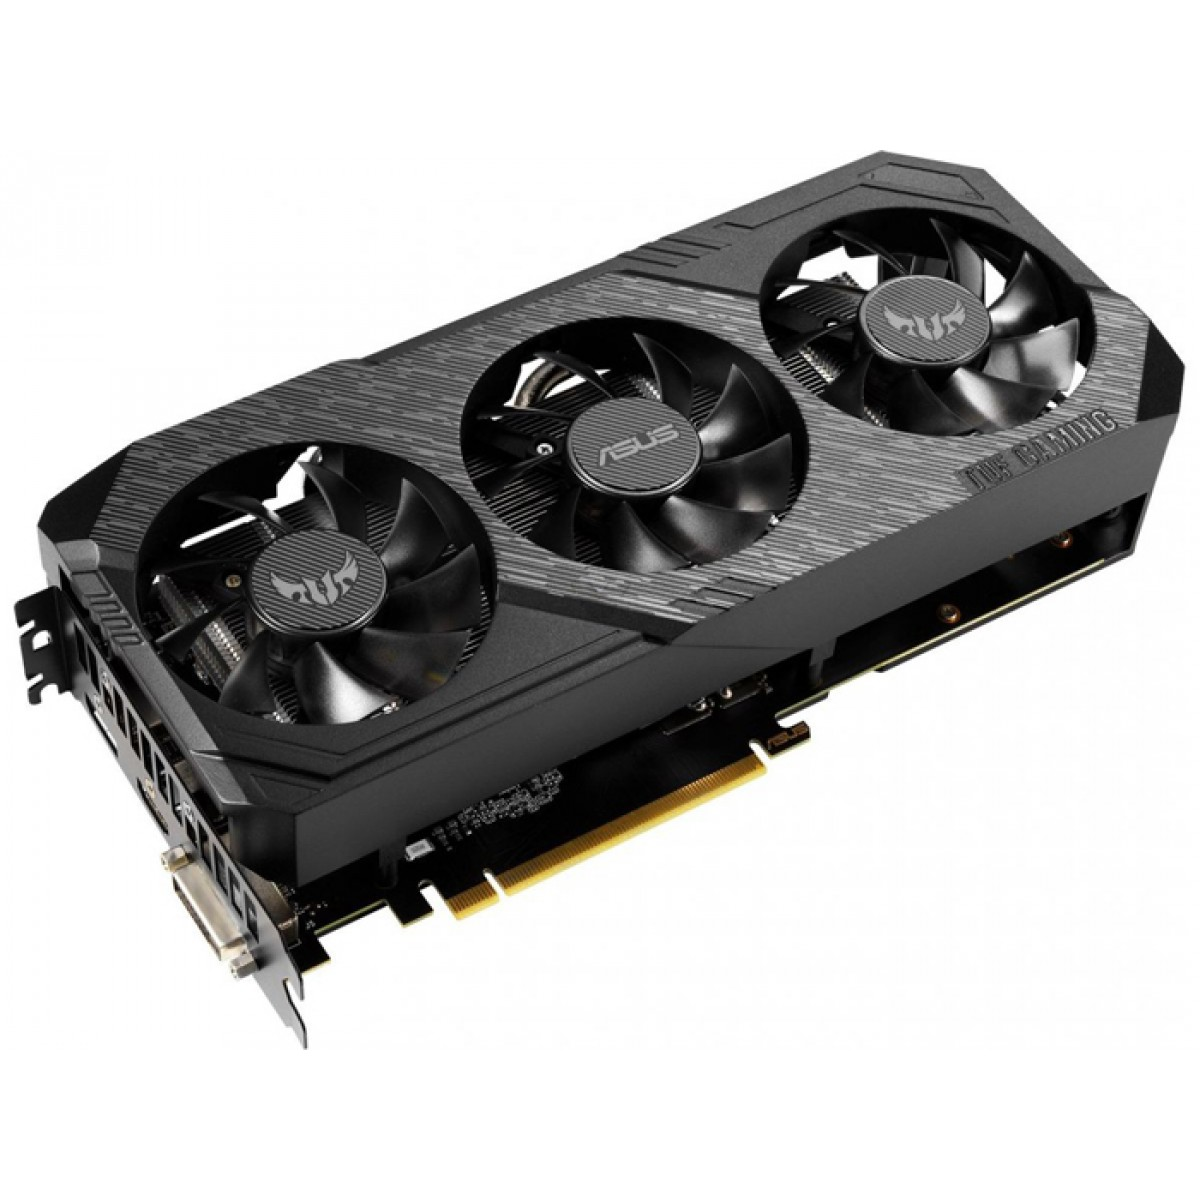 Placa de Vídeo Asus GeForce TUF3 GTX 1660 OC, 6GB GDDR5, 192Bit, TUF3-GTX1660-O6G-GAMING